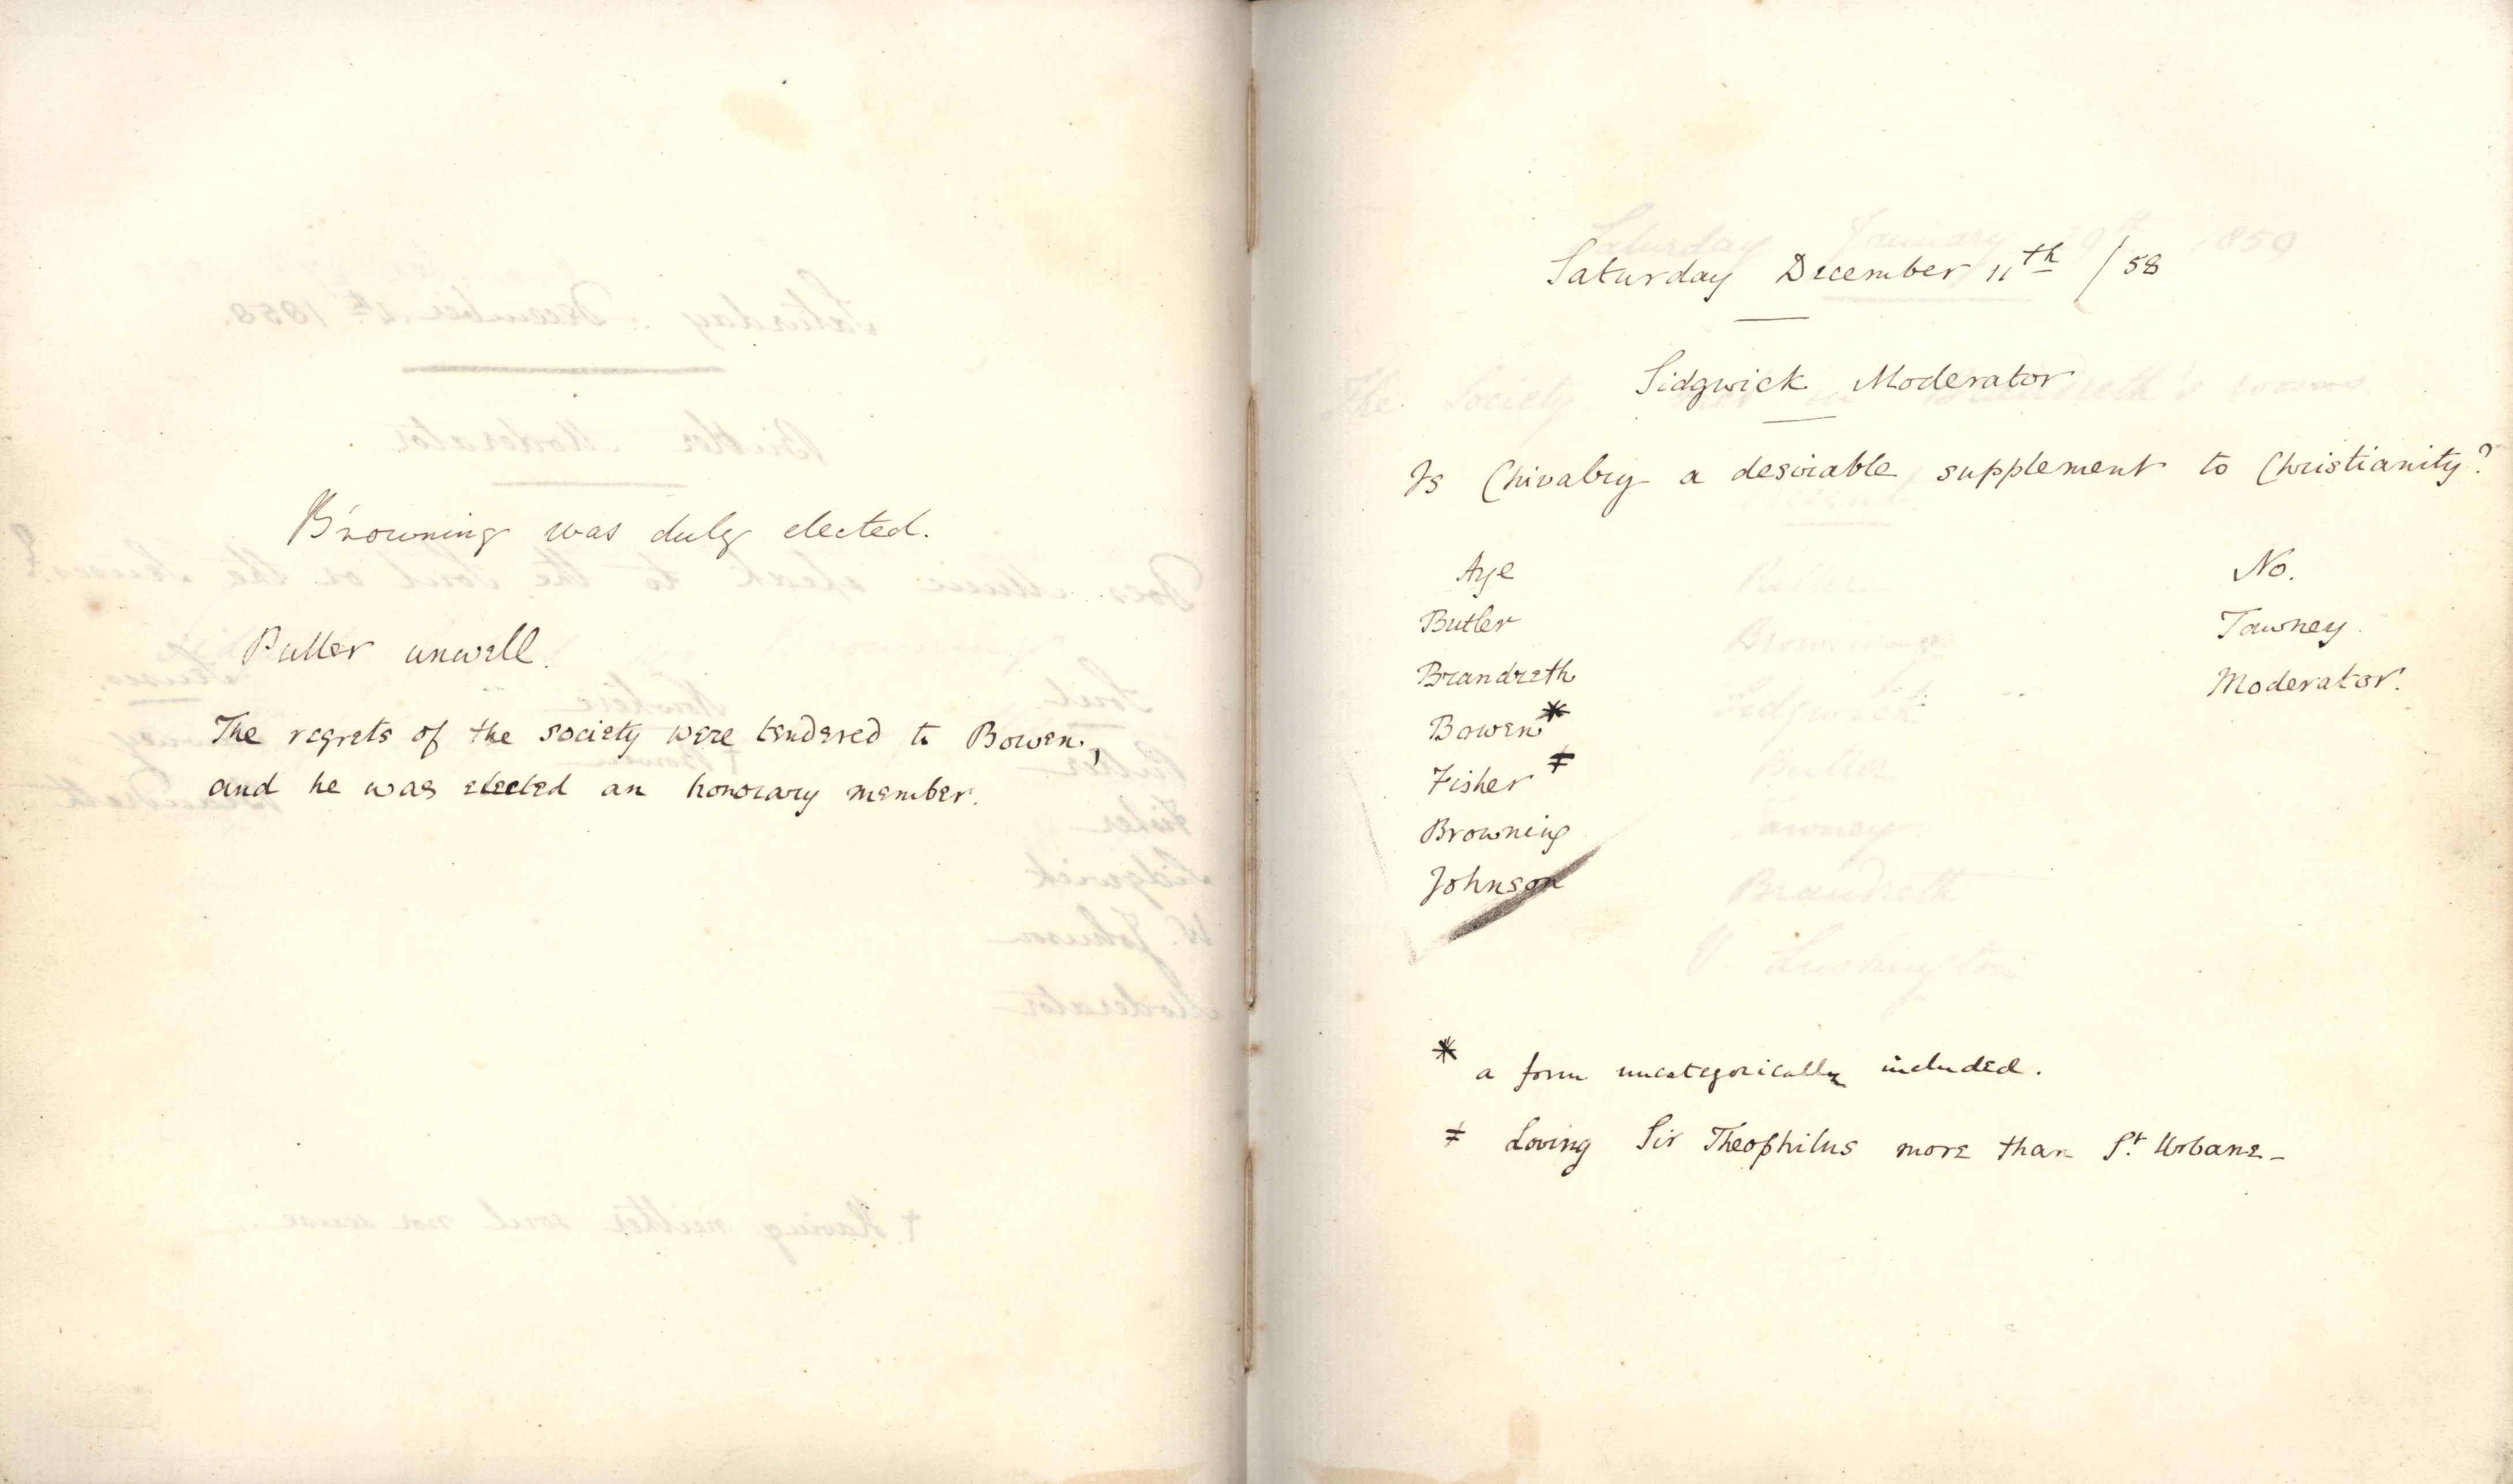 Minutes of a meeting in which Oscar Browning was elected a member. [KCAS/39/1/5, 11 December 1858]